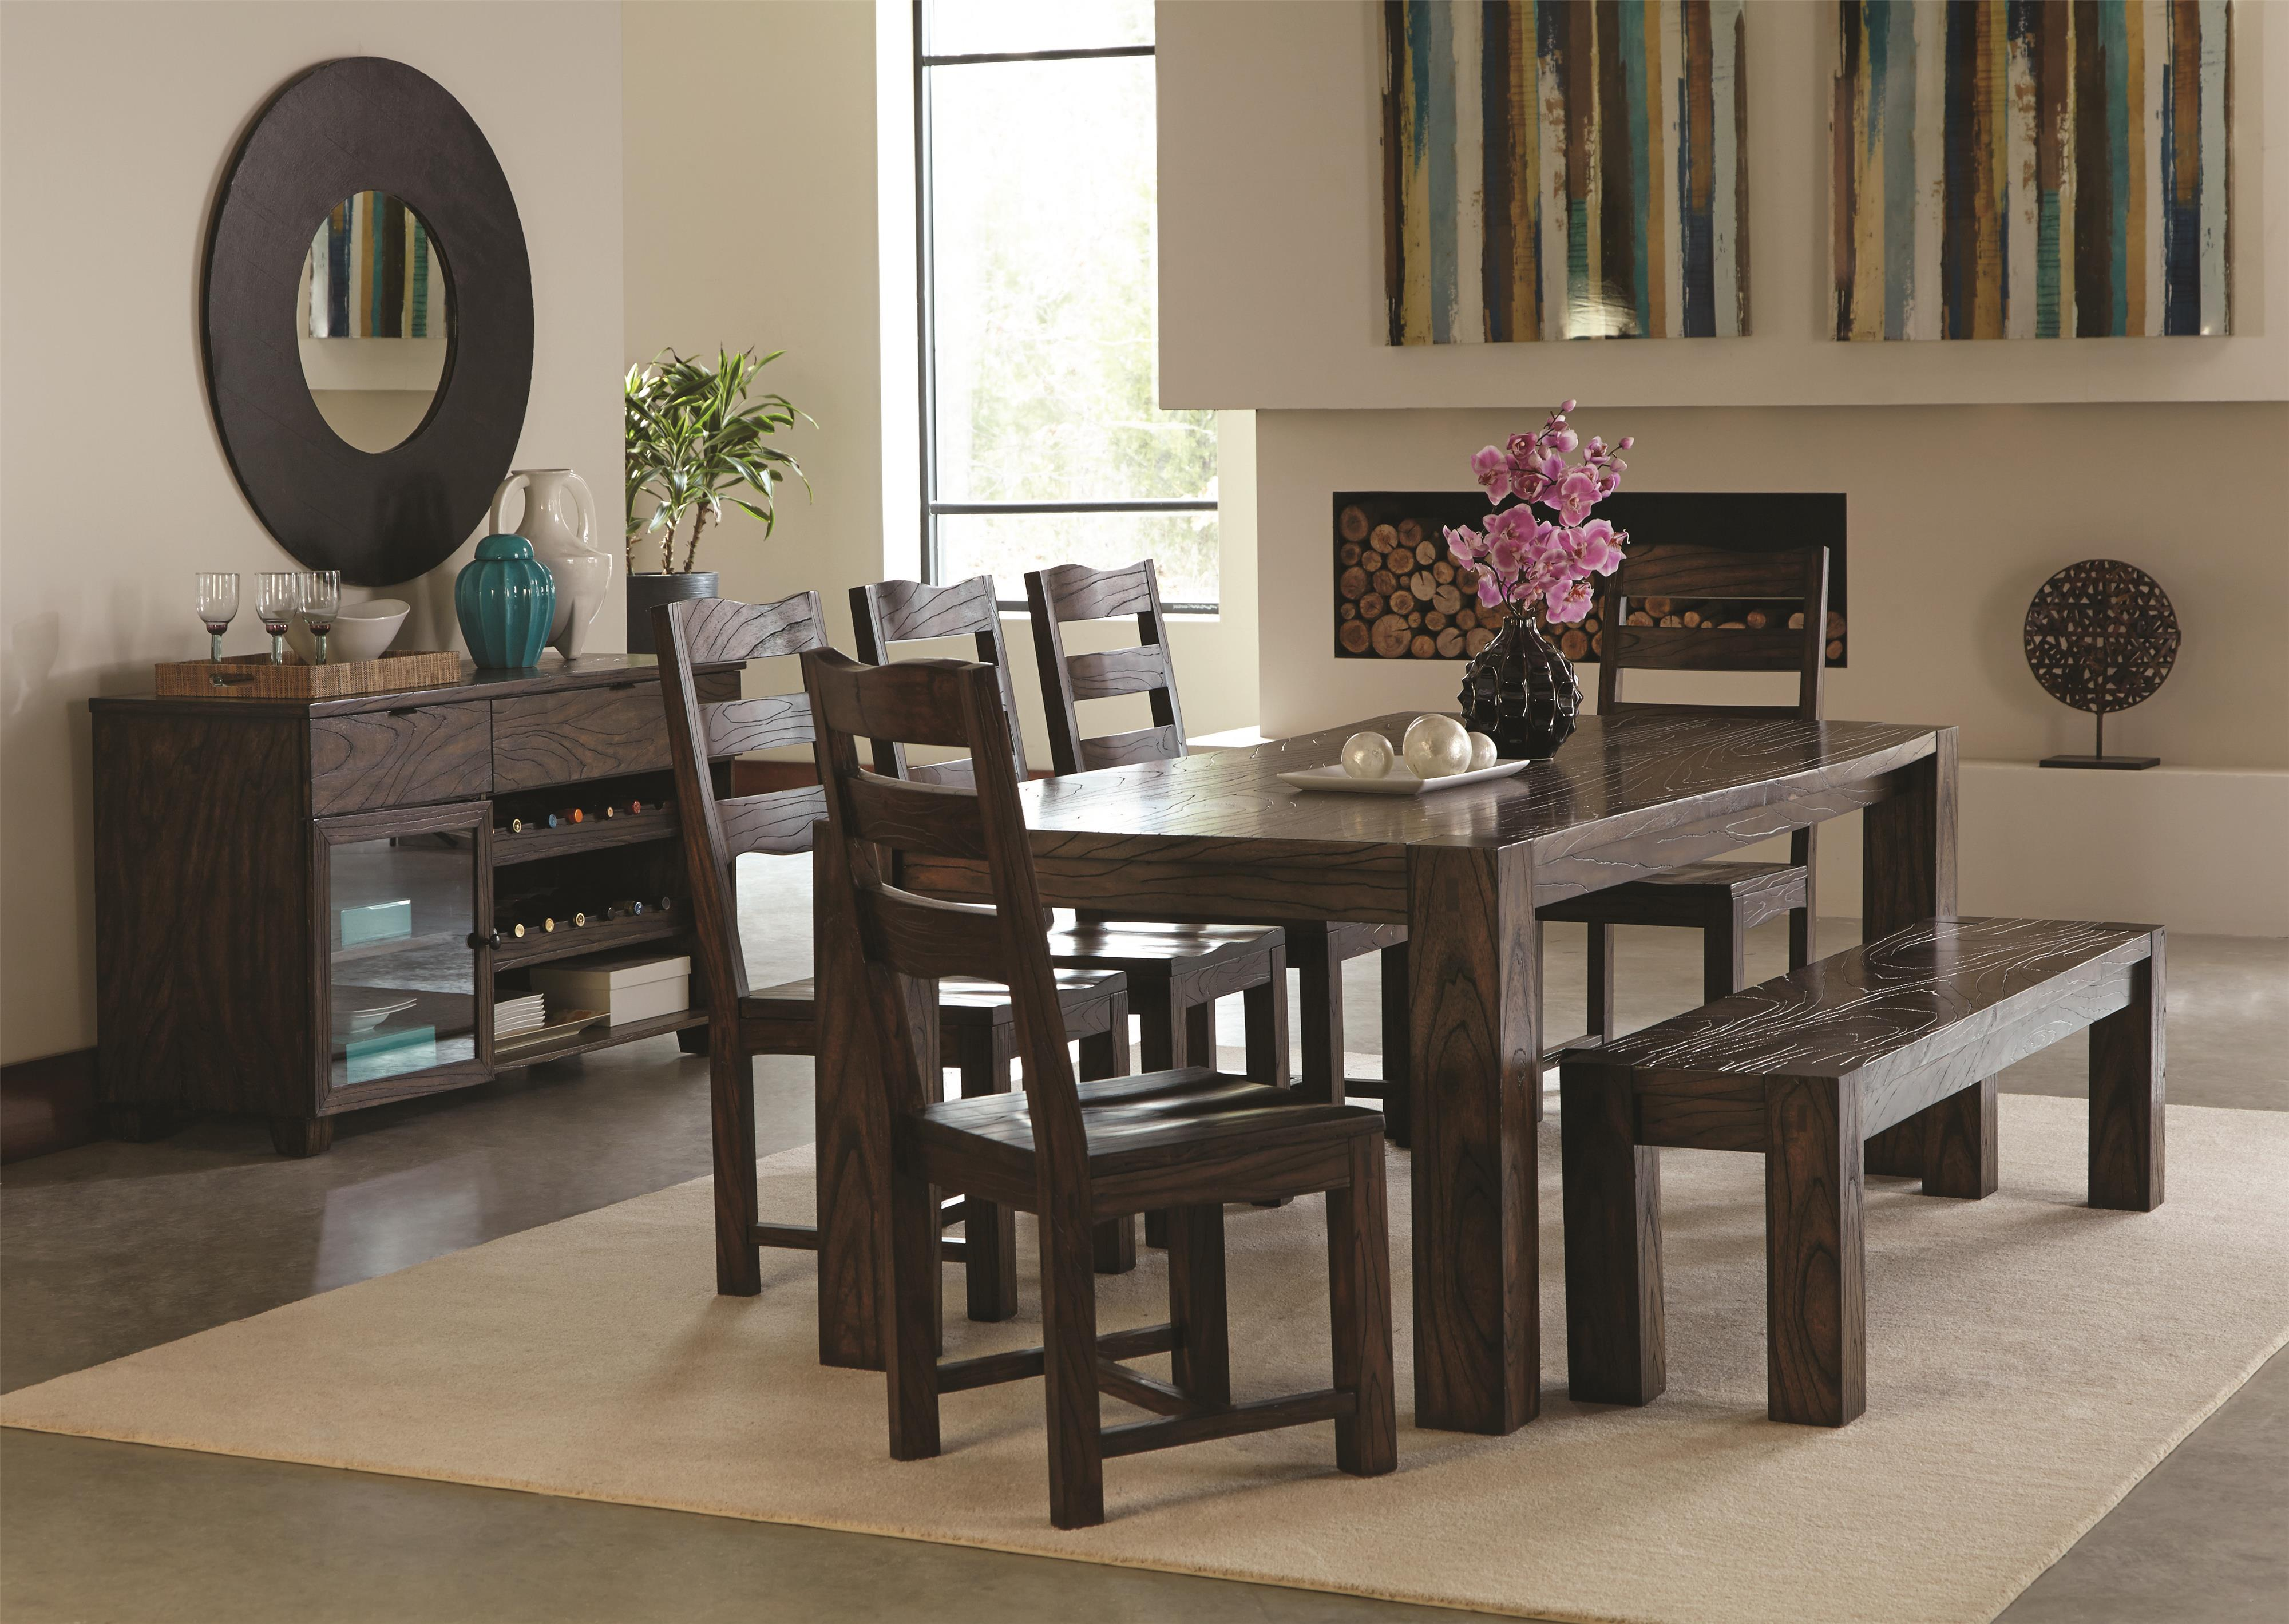 Coaster Calabasas Casual Dining Room Group - Item Number: 12115 Dining Room Group 1